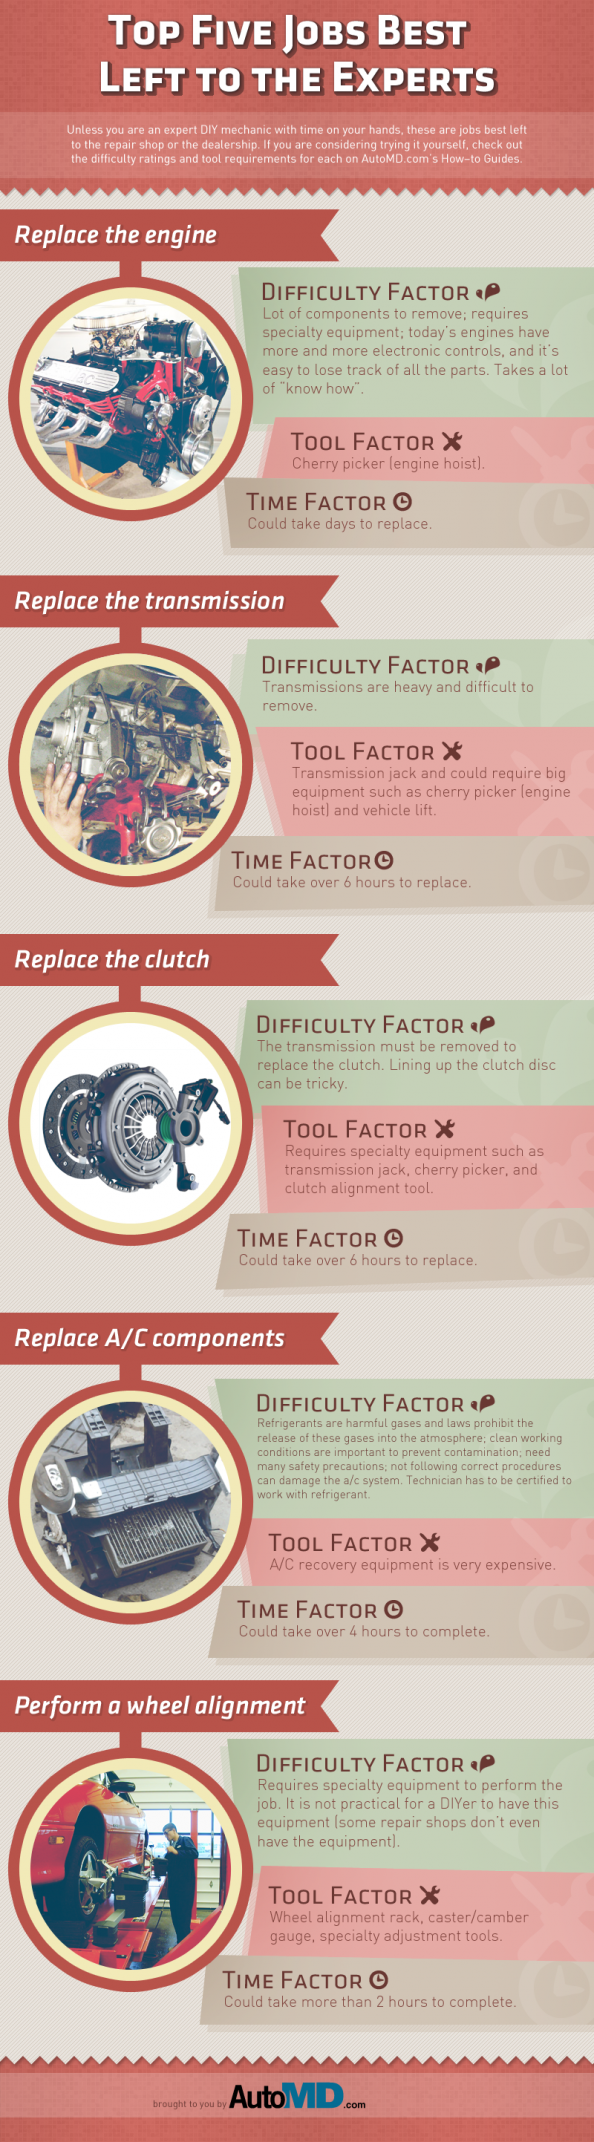 Top Five Jobs Best Left to the Experts Infographic